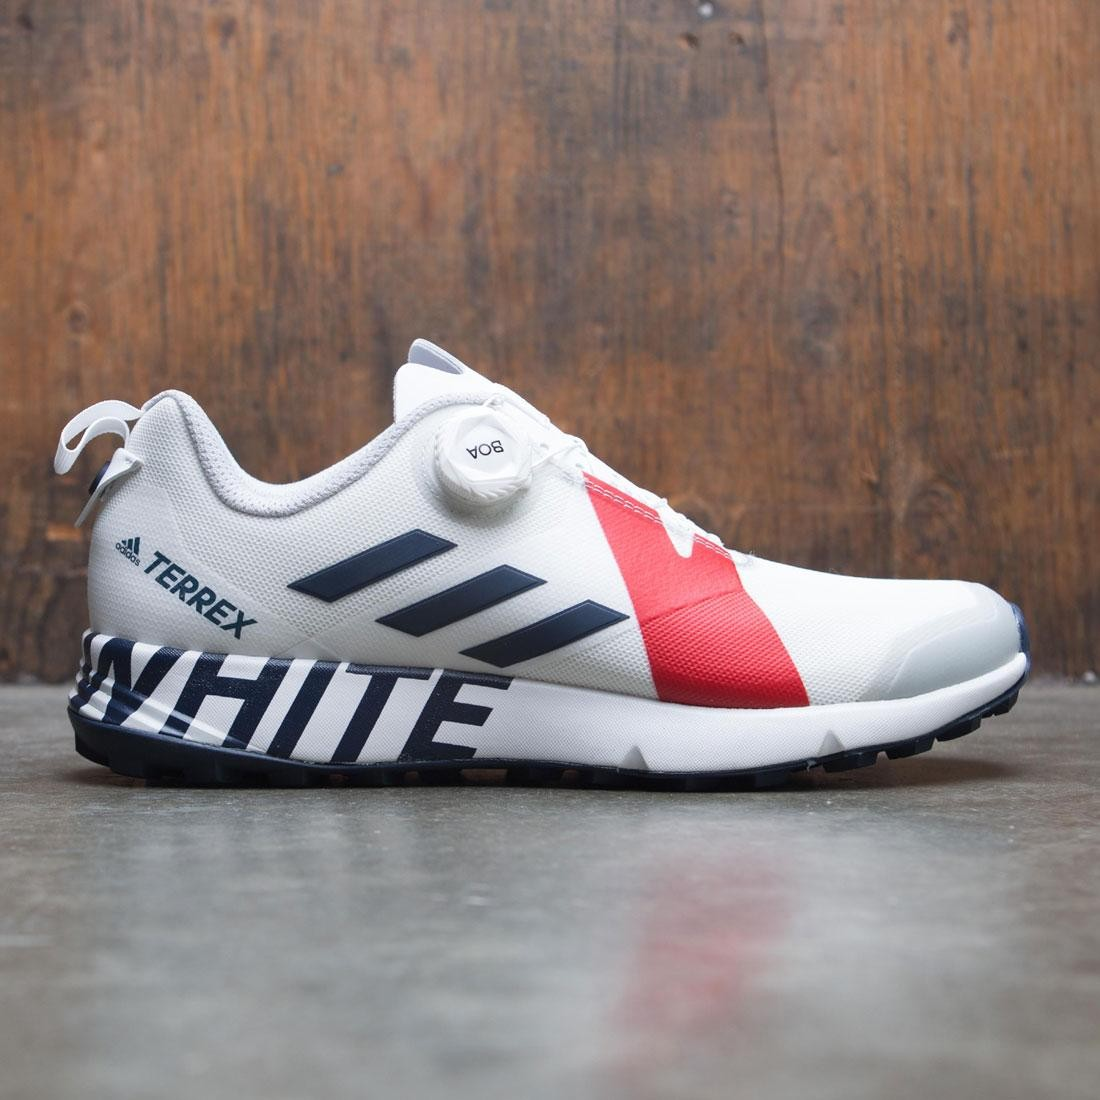 3835af675f99 Adidas Men White Mountaineering Terrex Two Boa white collegiate navy red